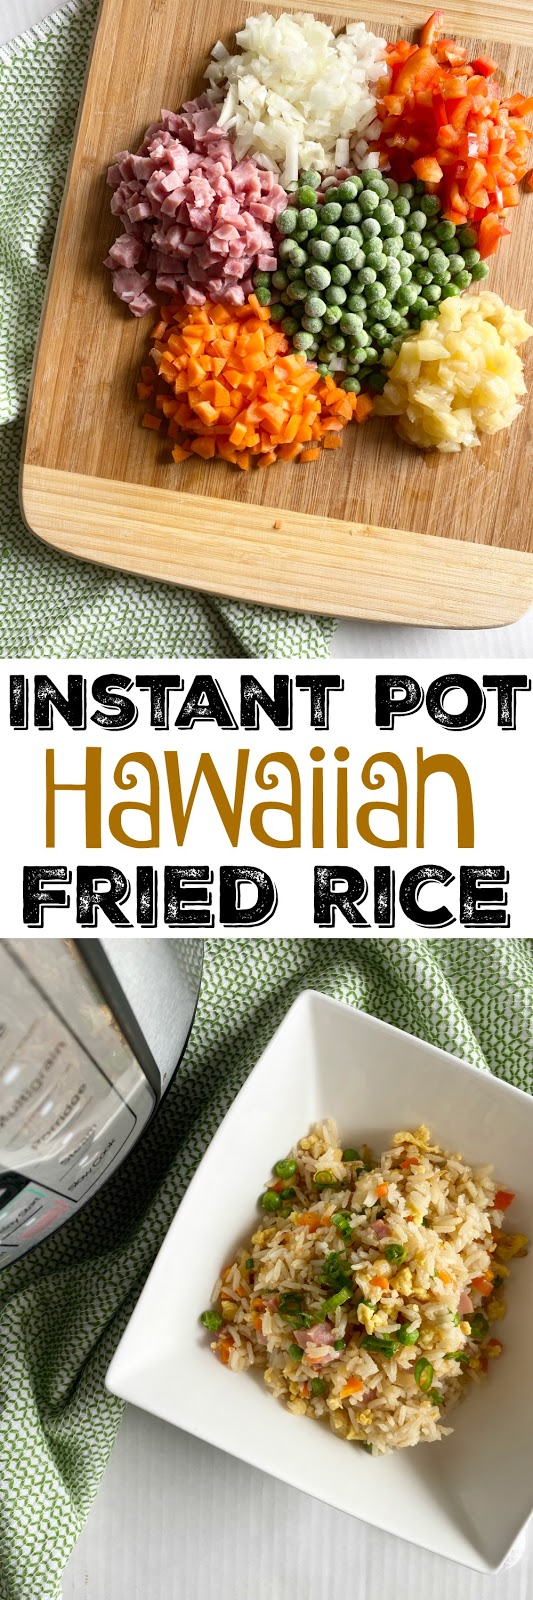 Instant Pot Hawaiian Fried Rice #instantpot #iowaegg #ad